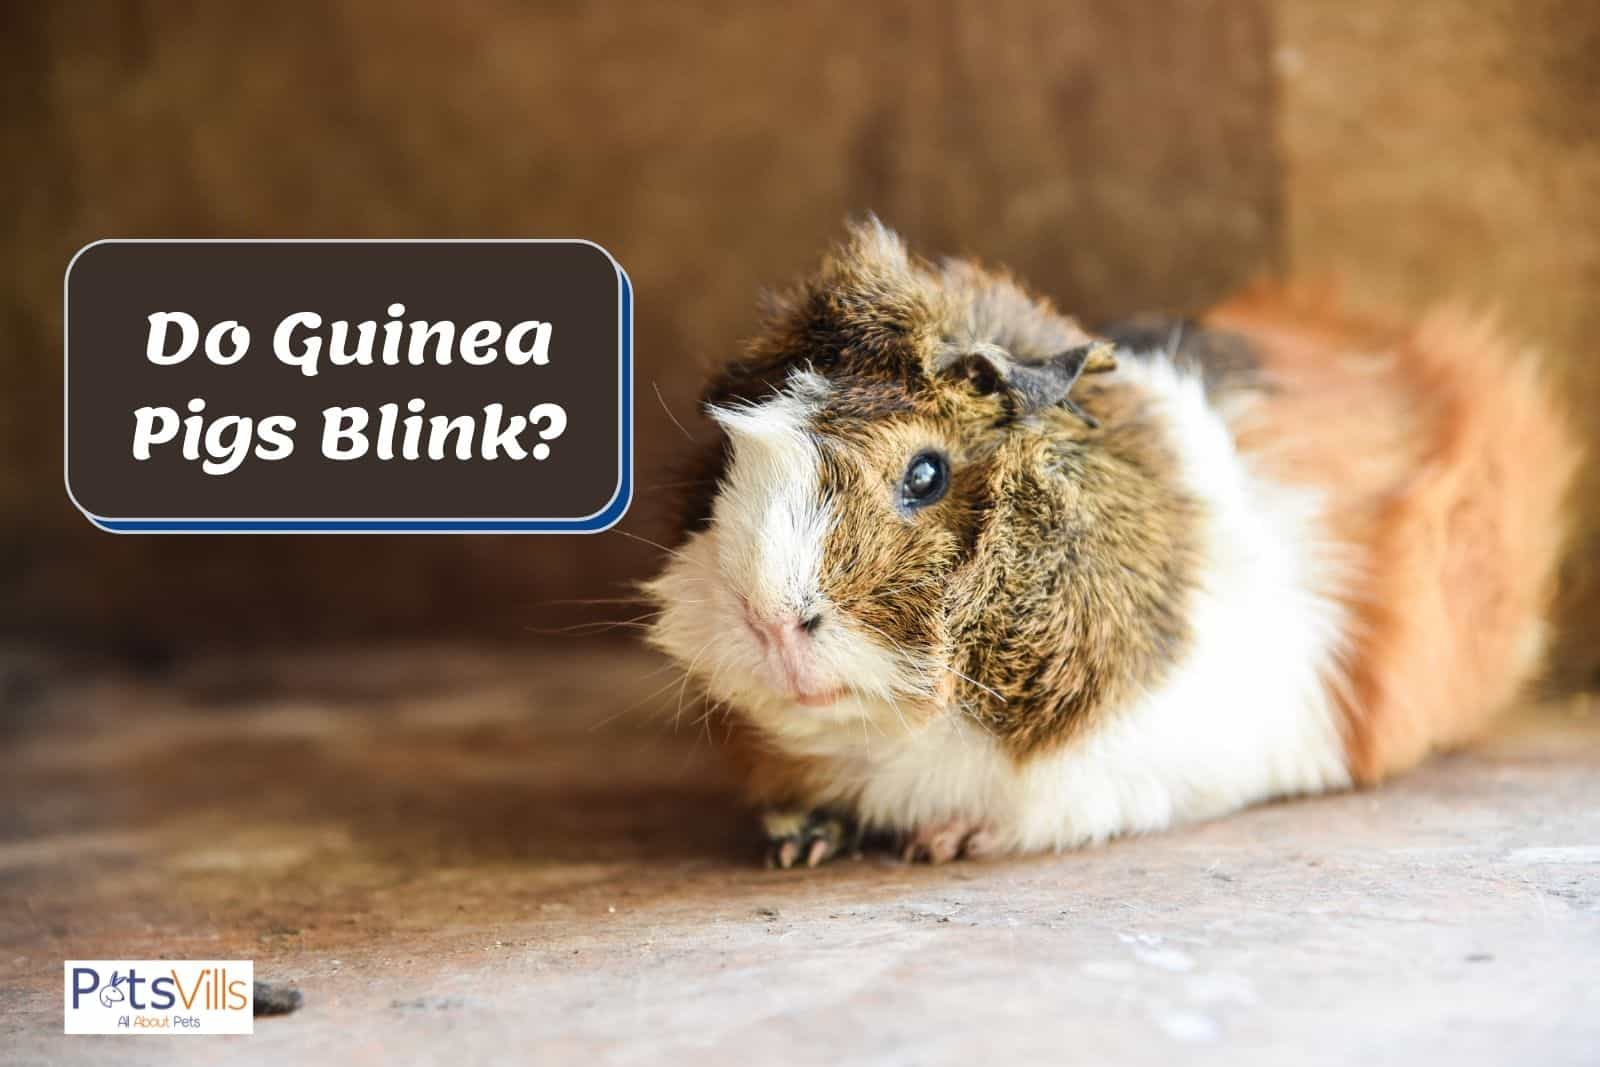 a guinea pig with blinking eyes at outside